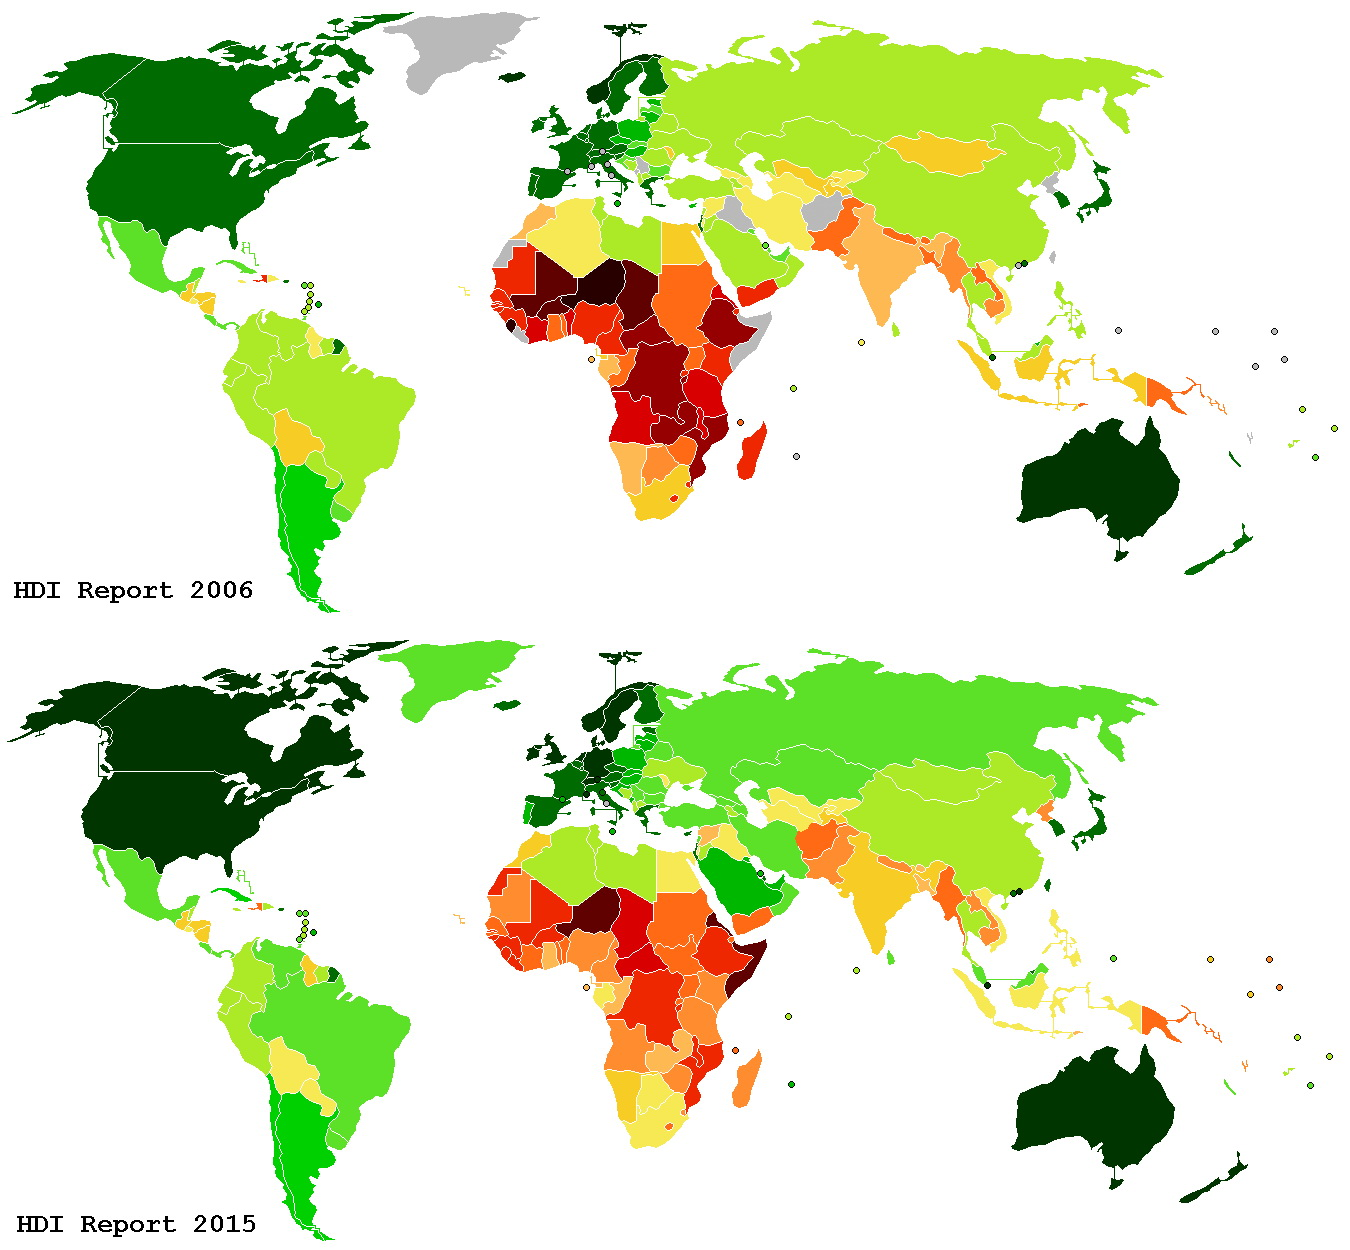 Human Development Index 2006 & 2015